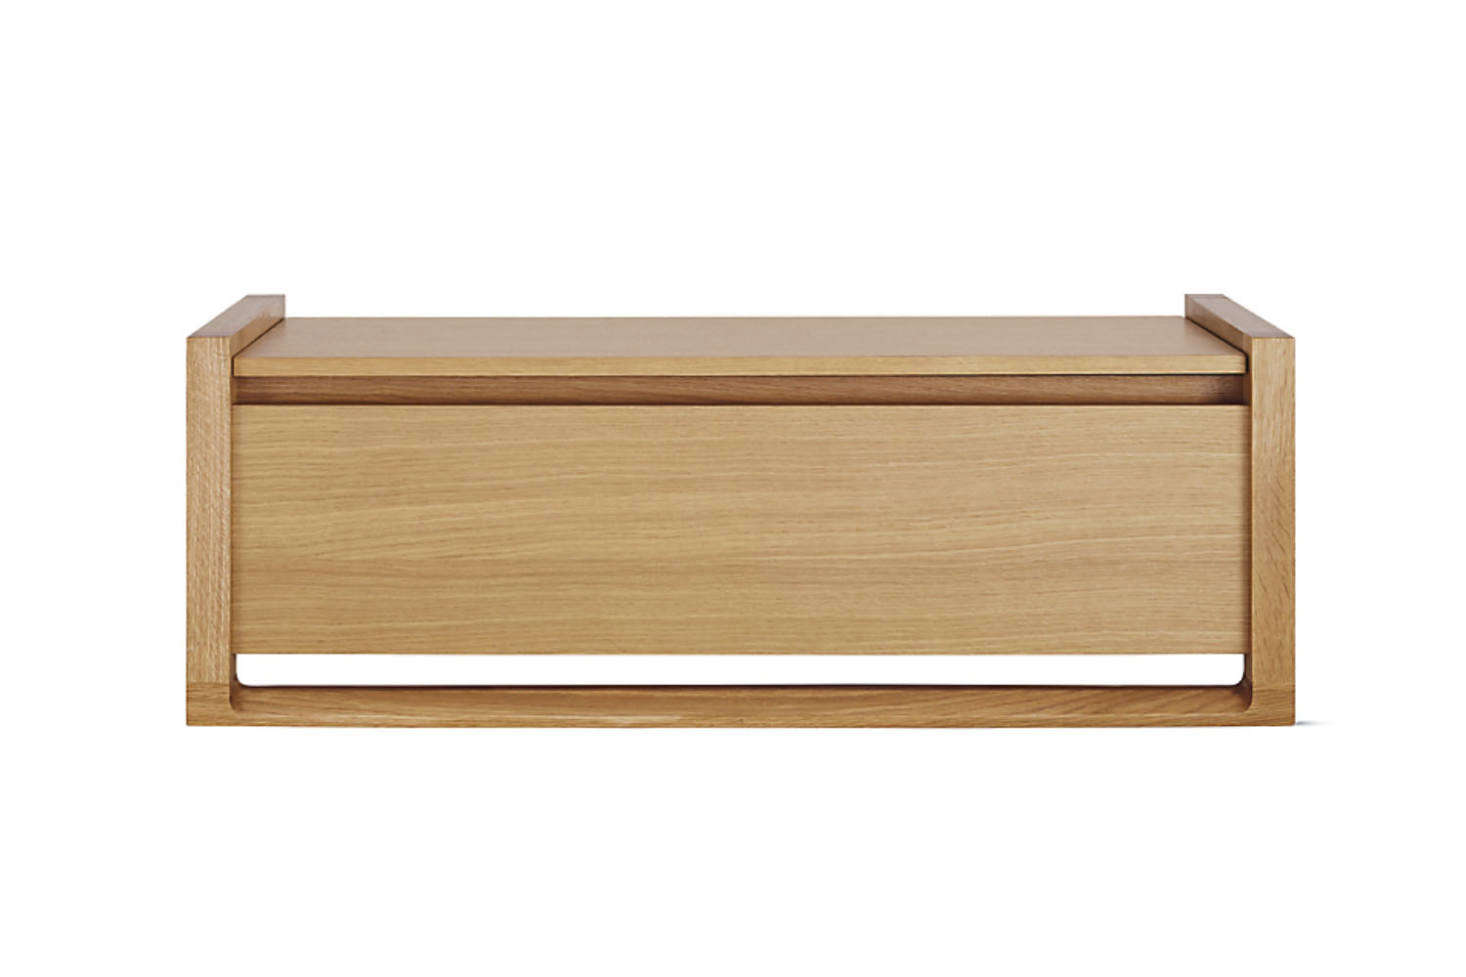 10 Easy Pieces: Storage Benches